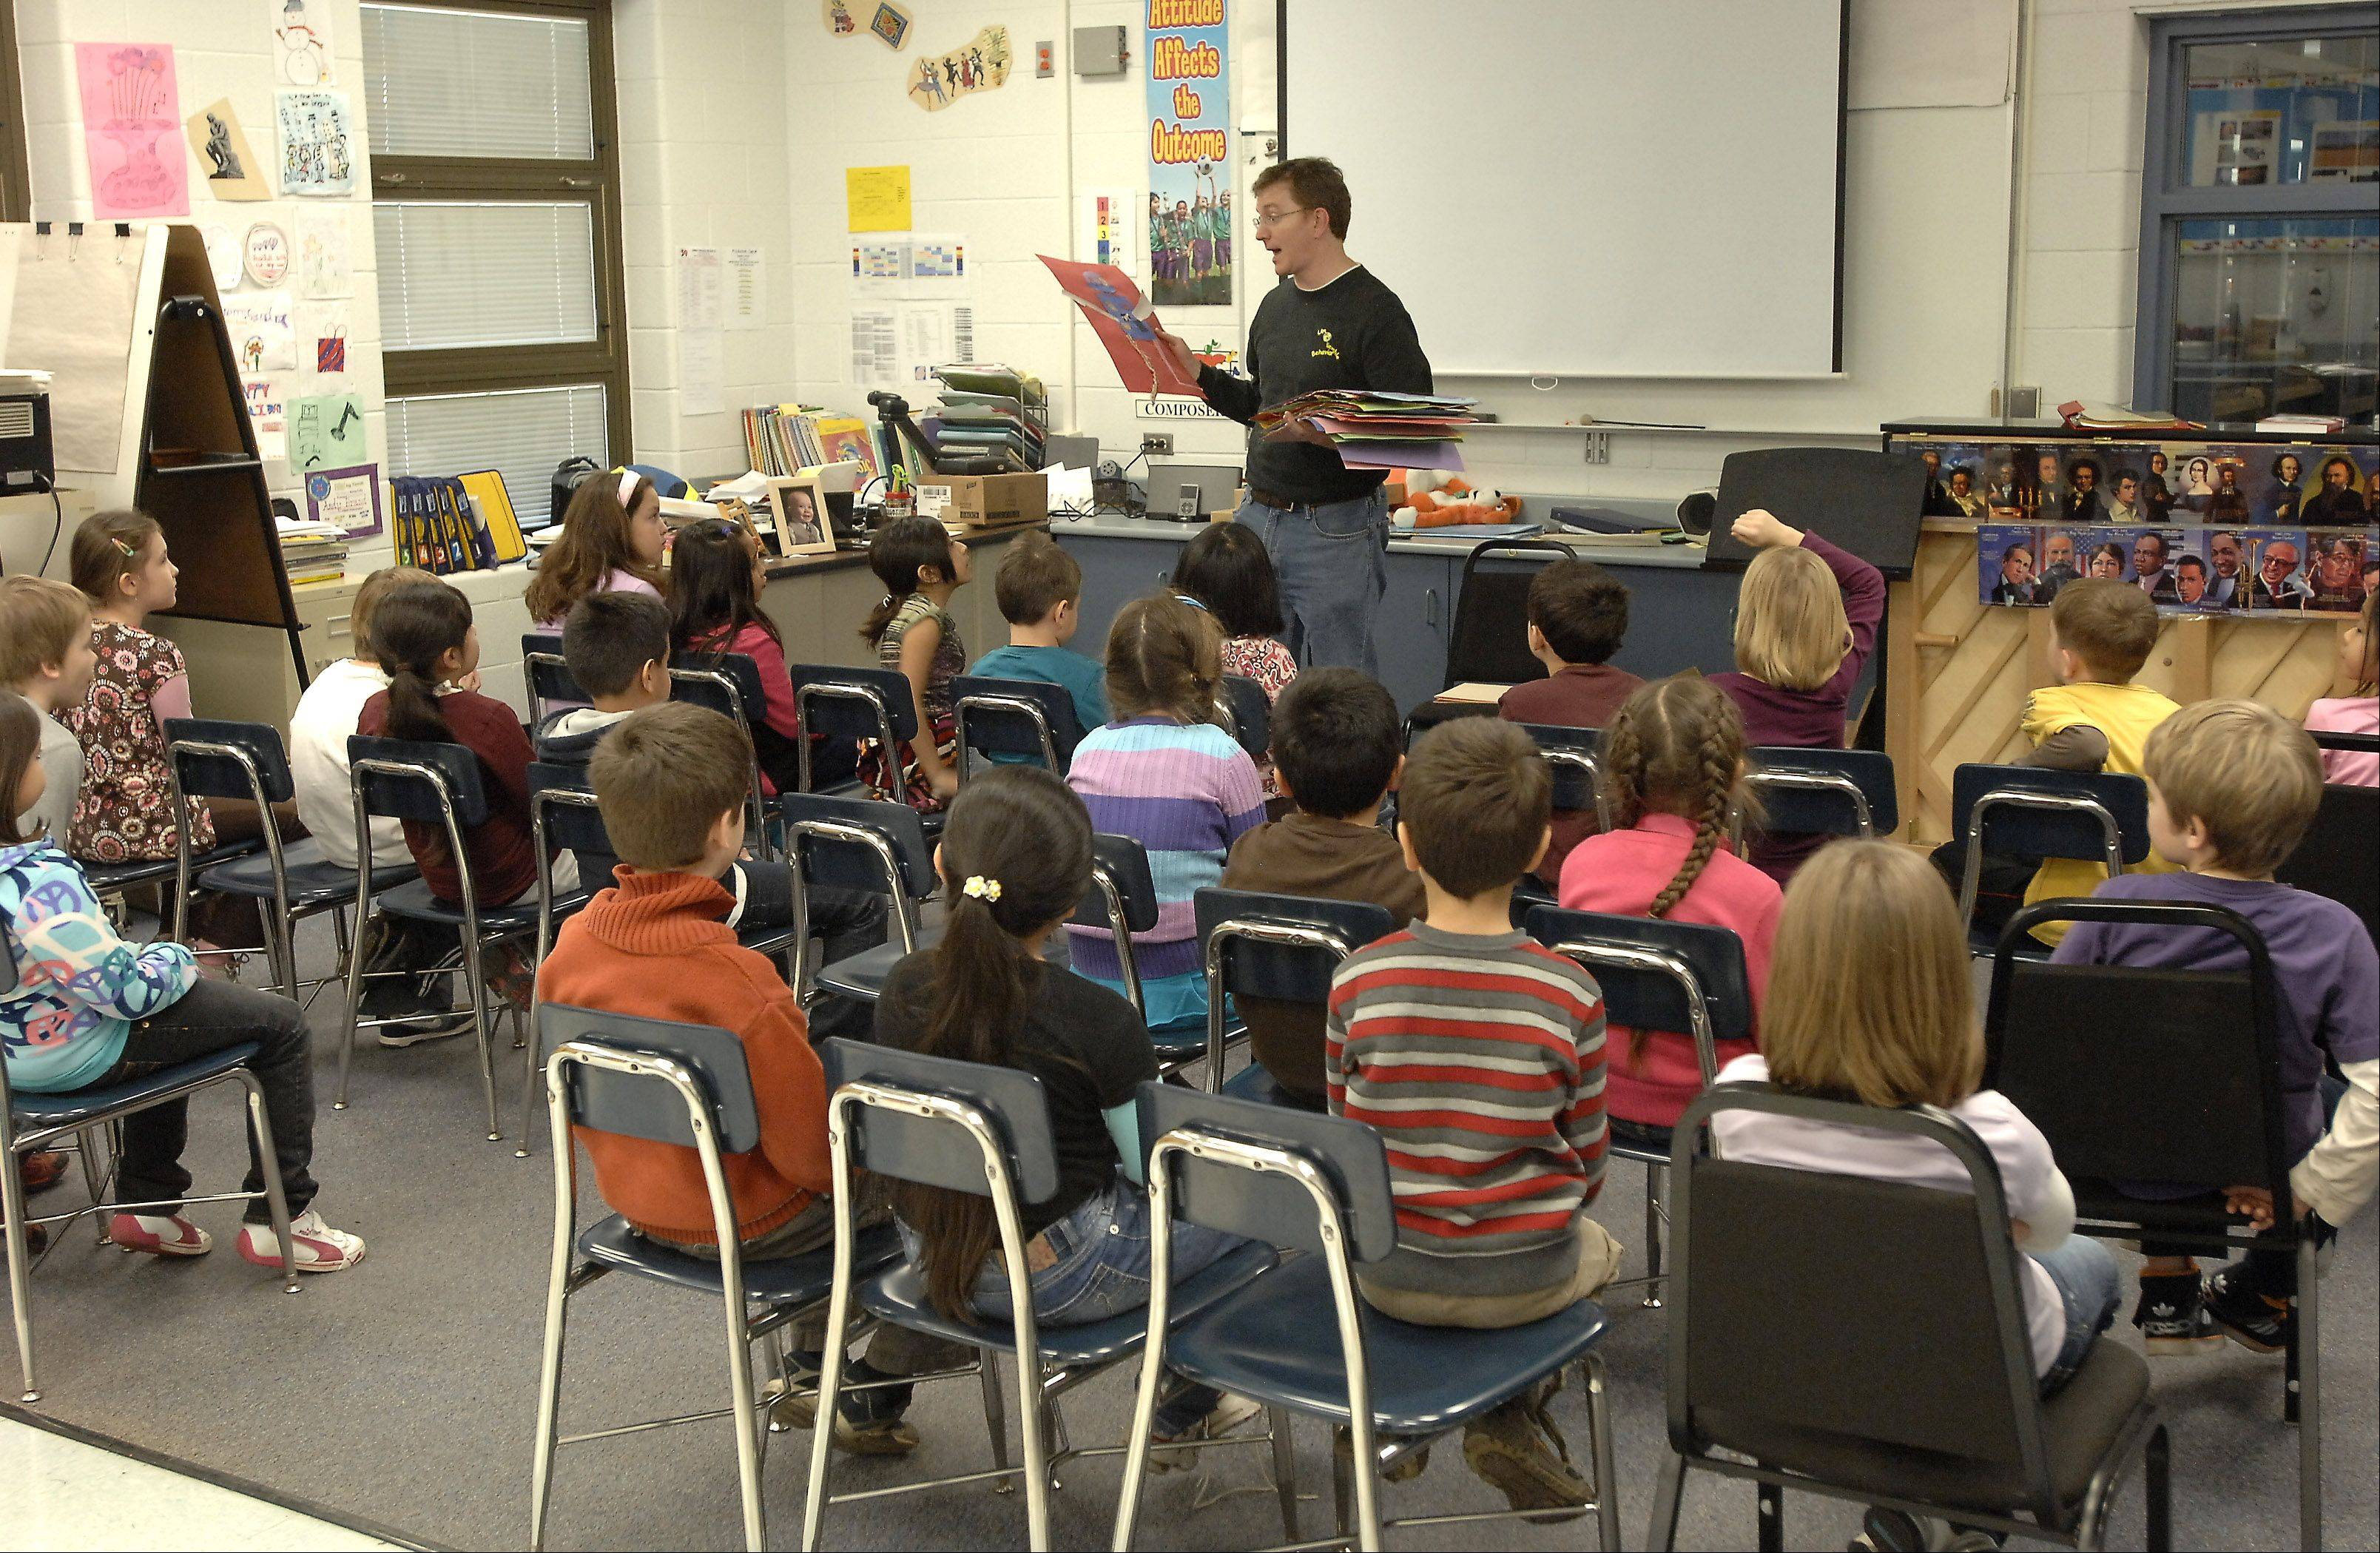 Fine arts teacher Andrew Brand works with 29 students during his class at Robert Frost Elementary School in Mount Prospect. Overcrowding could cause him to teach in an art-in-a-cart system traveling to different rooms.